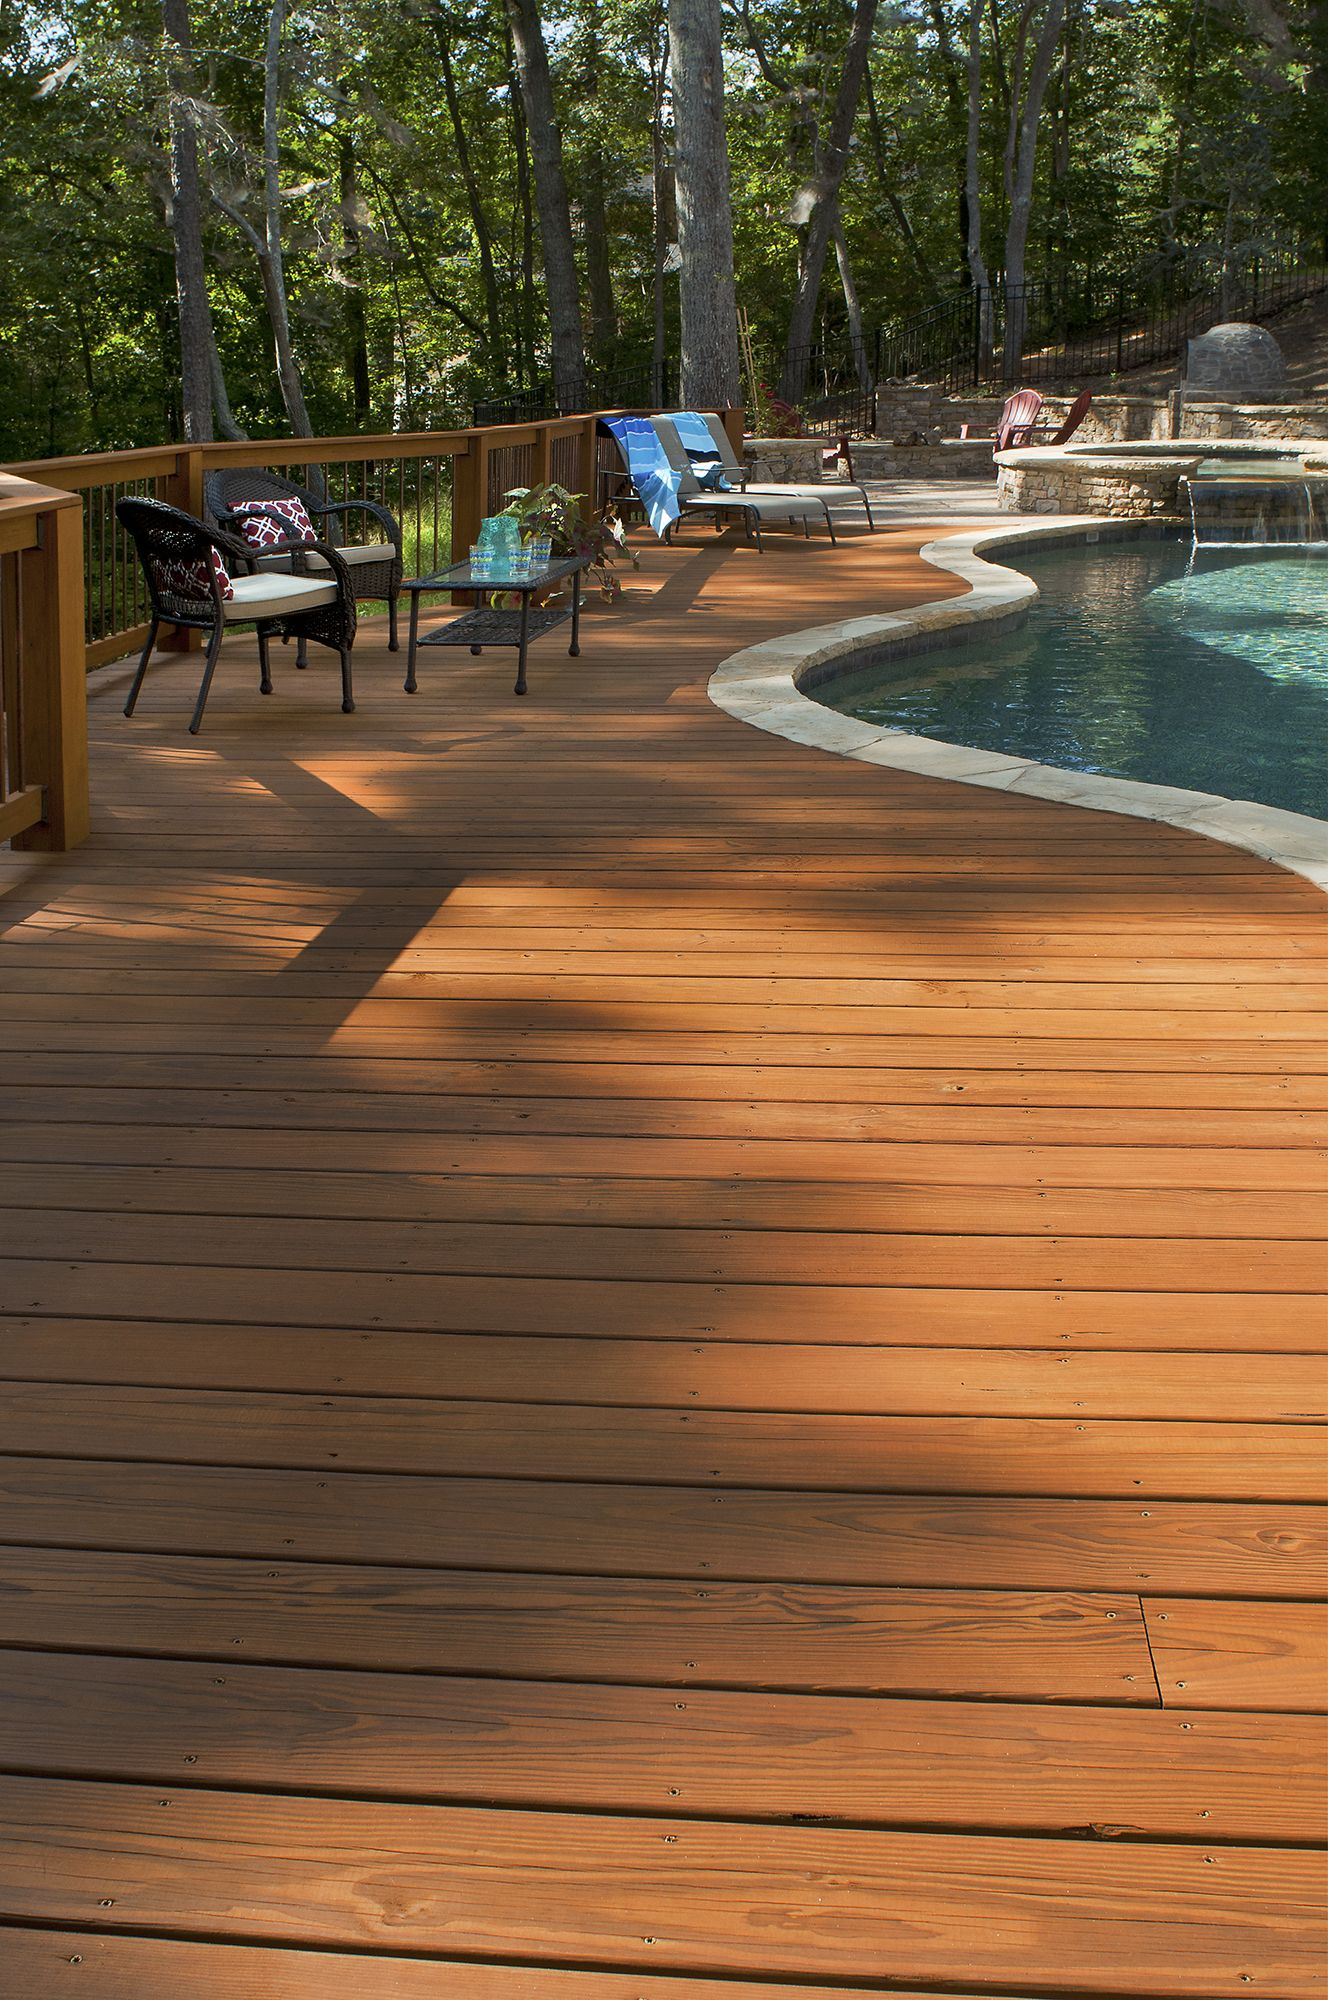 Wood Deck Adjoining An Inground Pool Designed And Built By